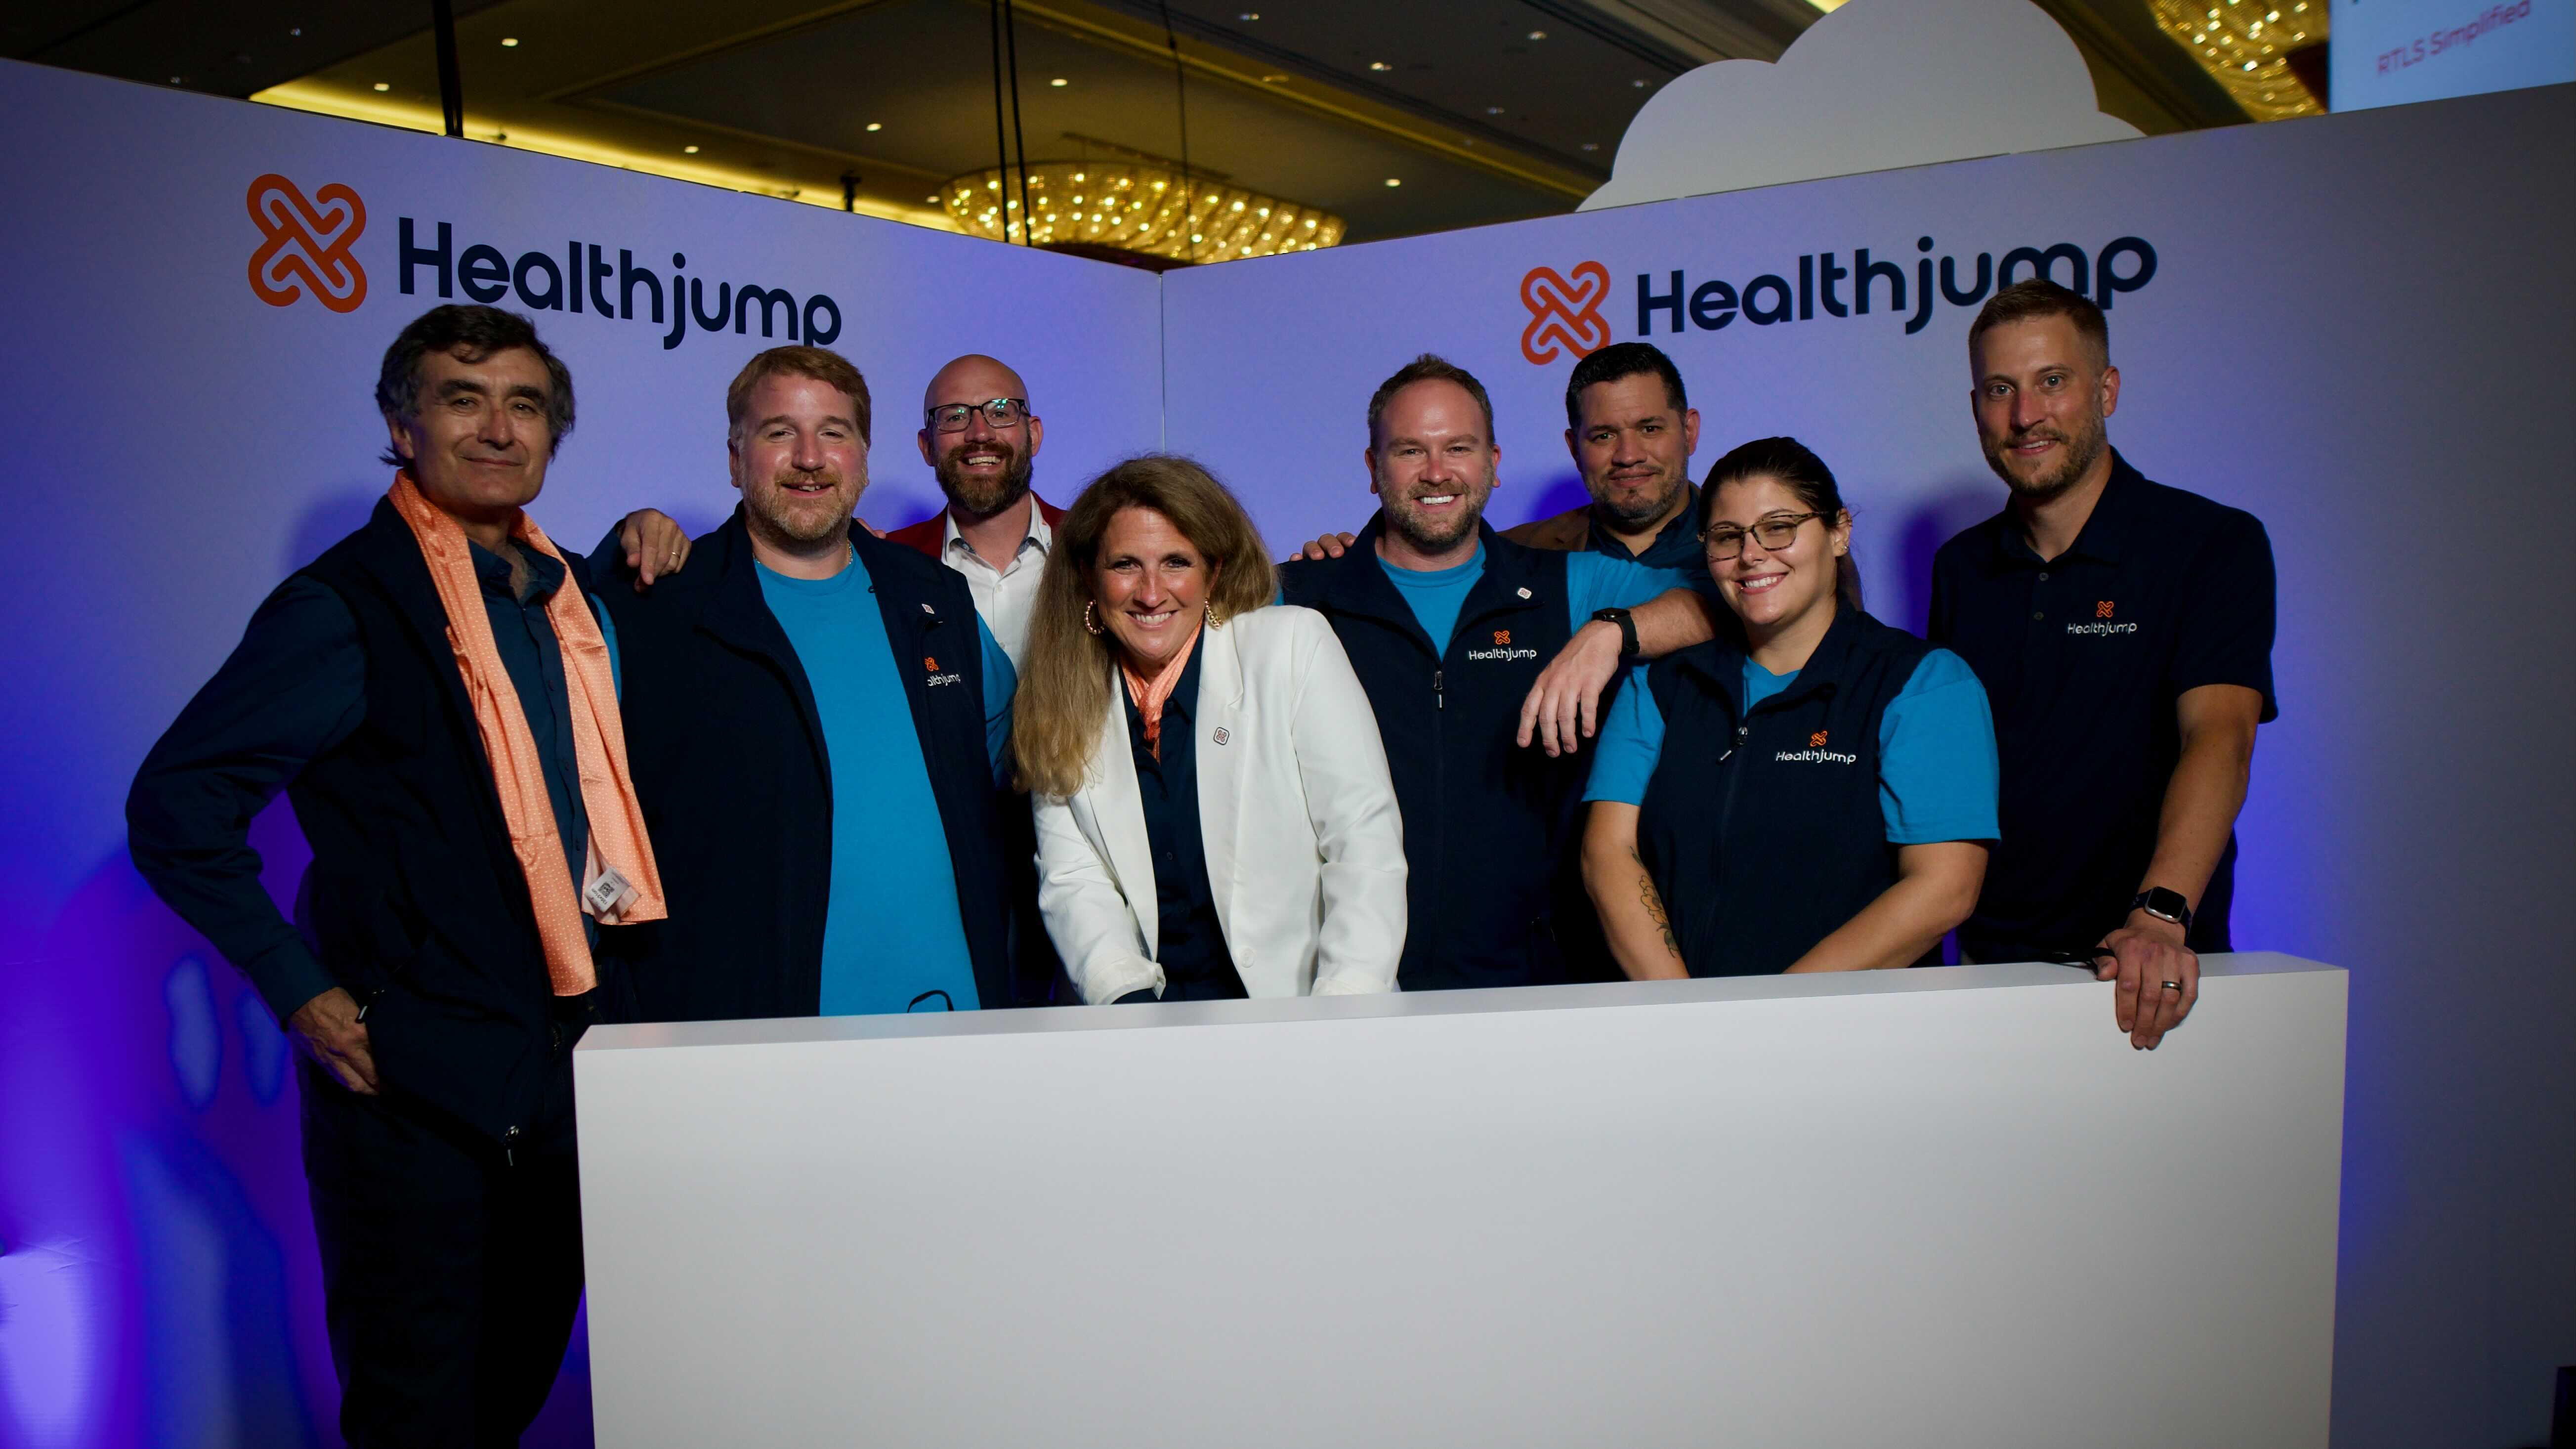 Some of the team members at Healthjump